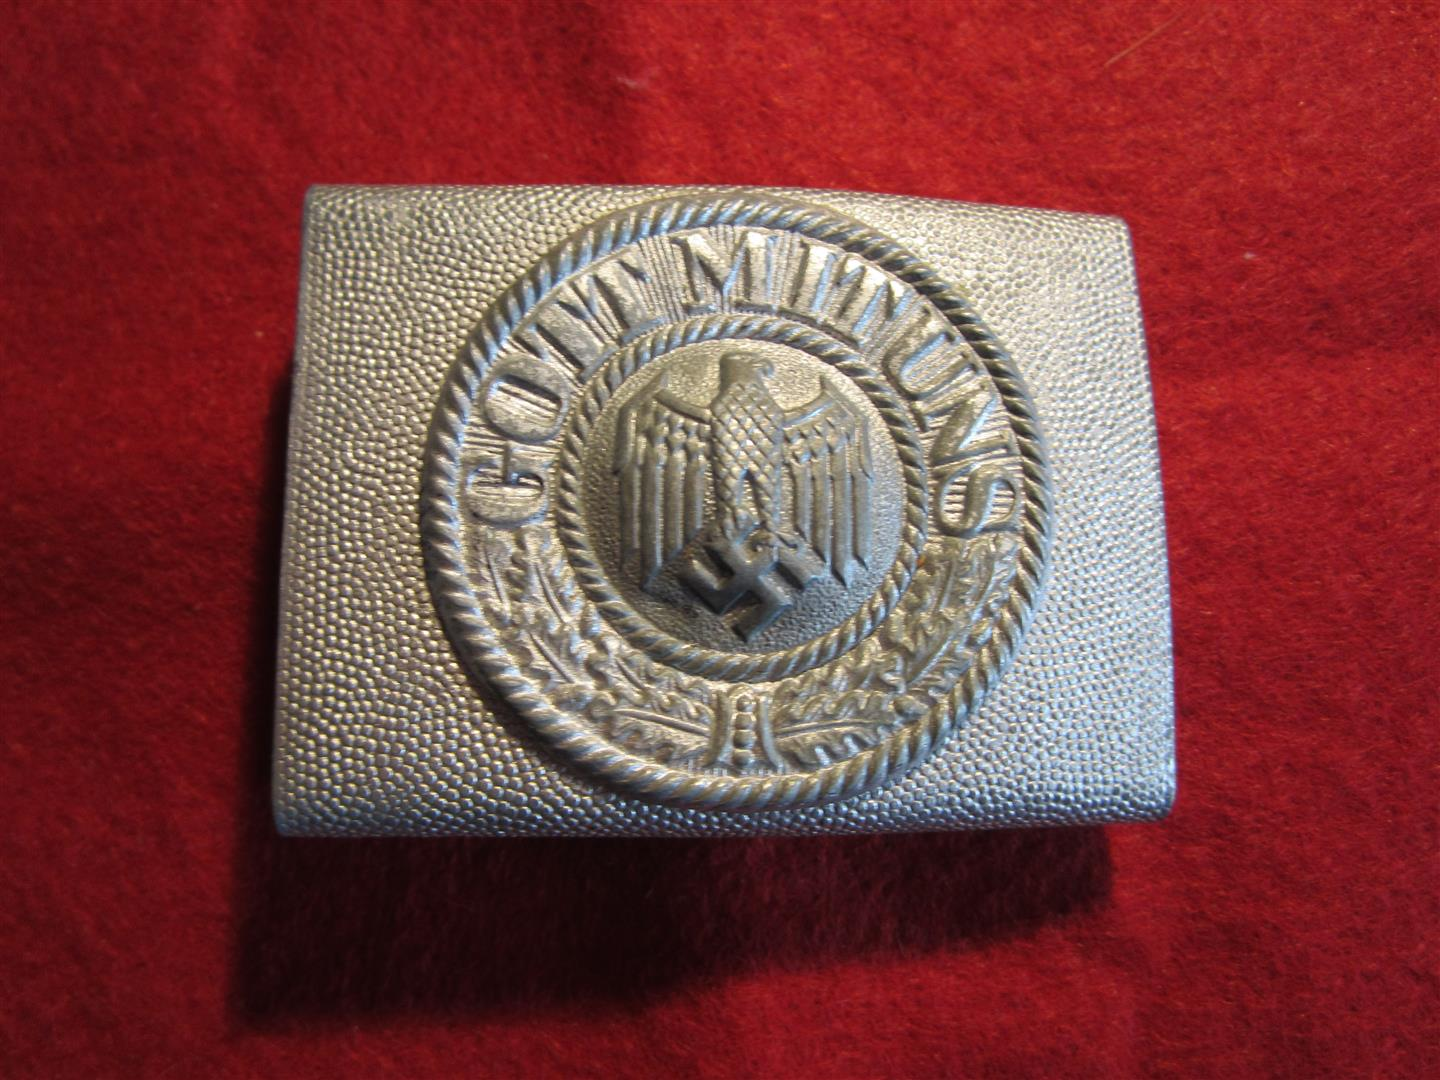 WW2 German Army Parade Belt Buckle